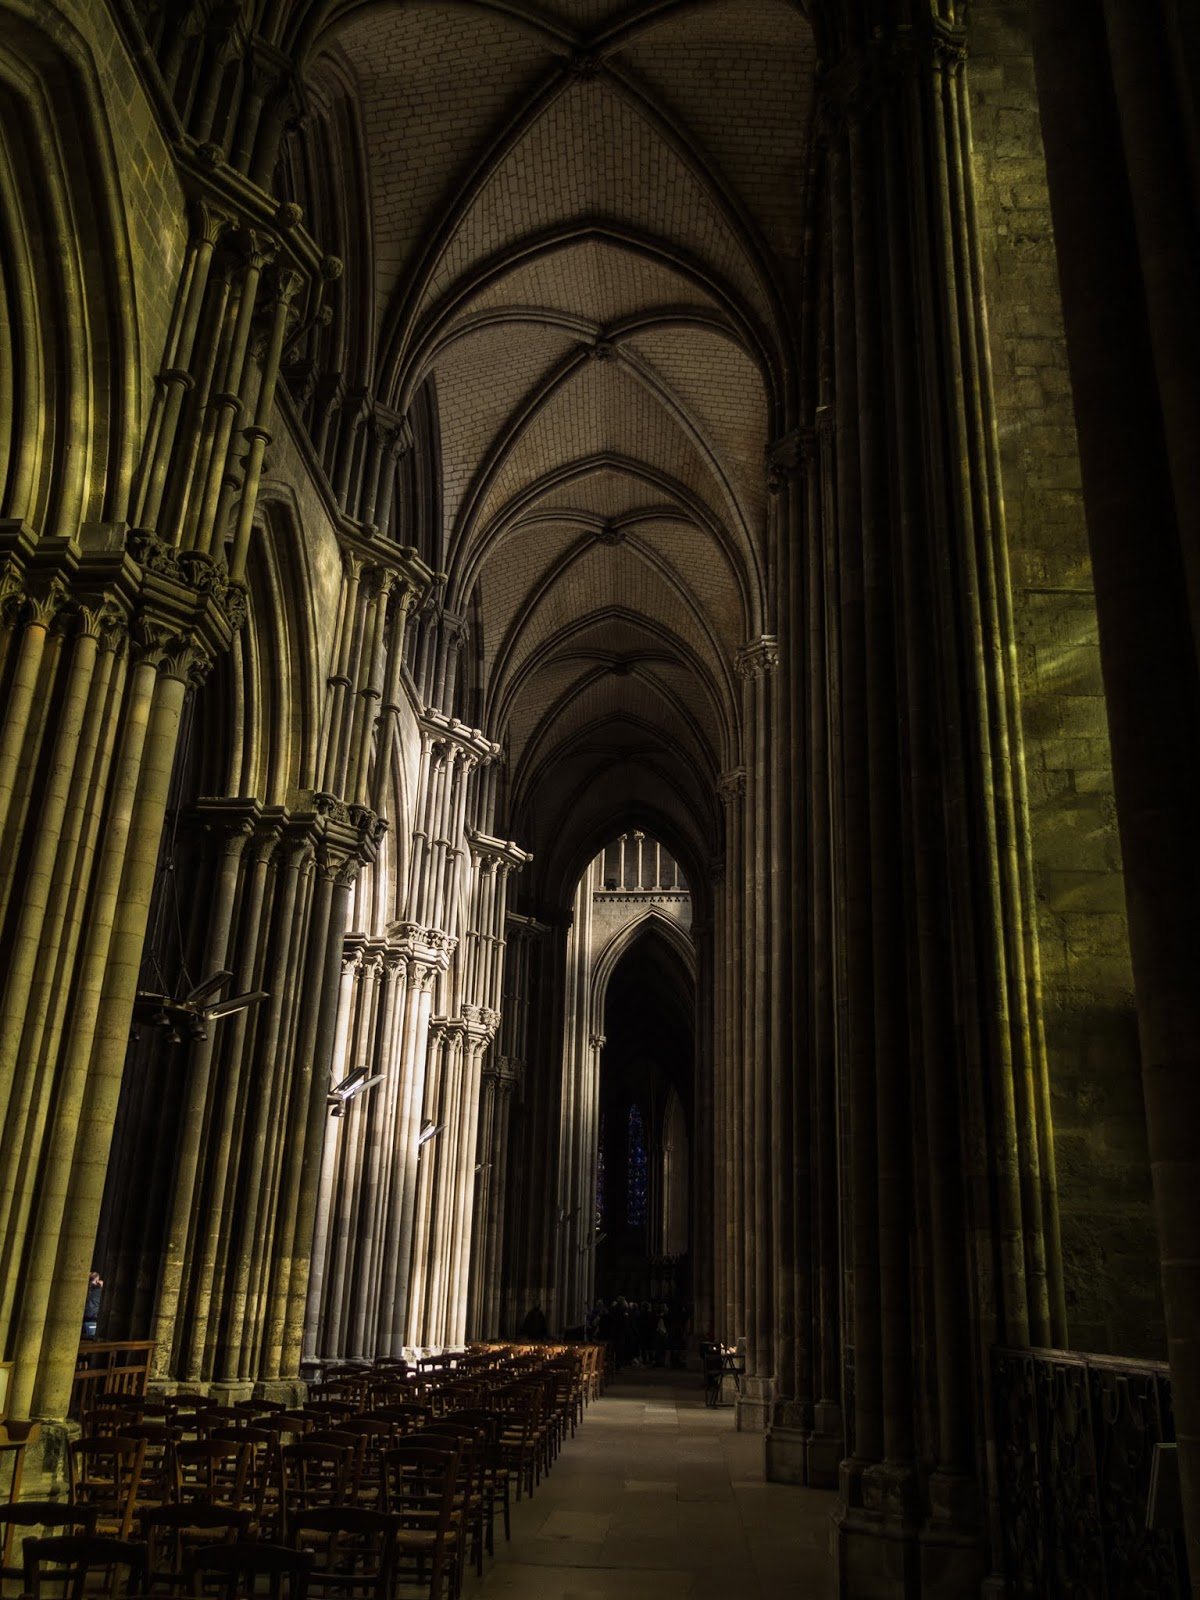 Light shining through stained glass onto the walls of the Rouen Cathedral.